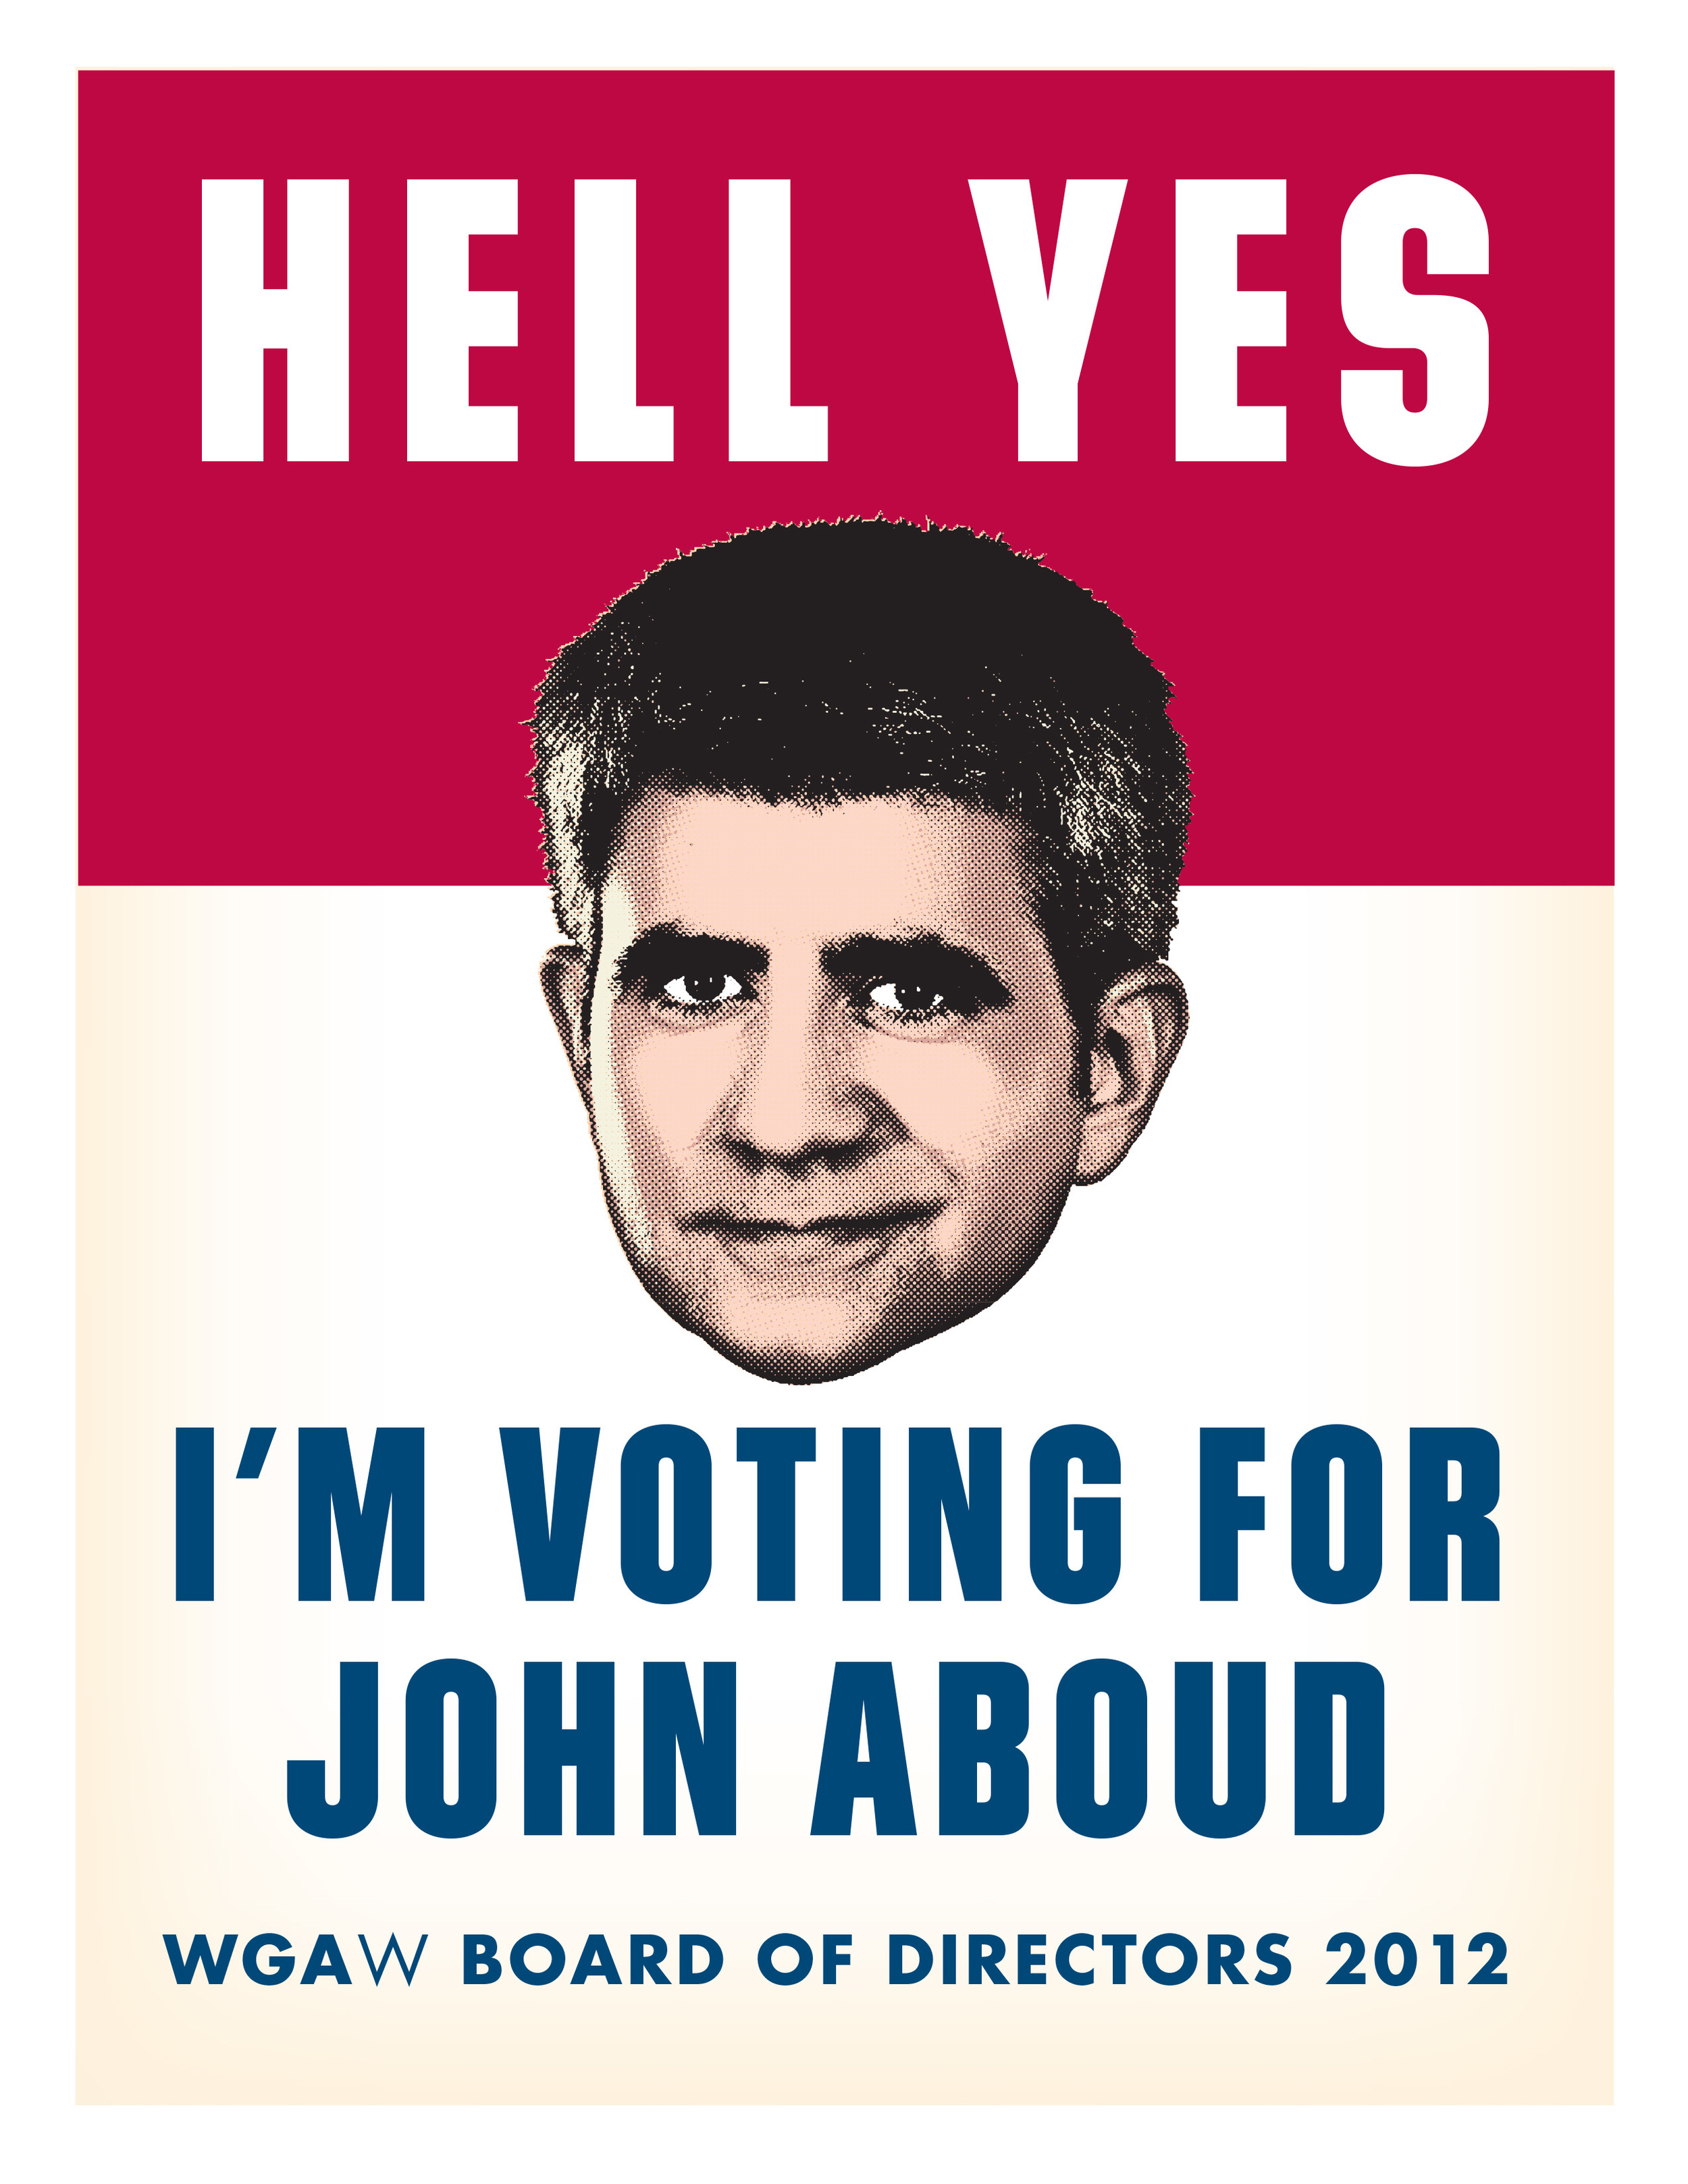 John Aboud campaign poster